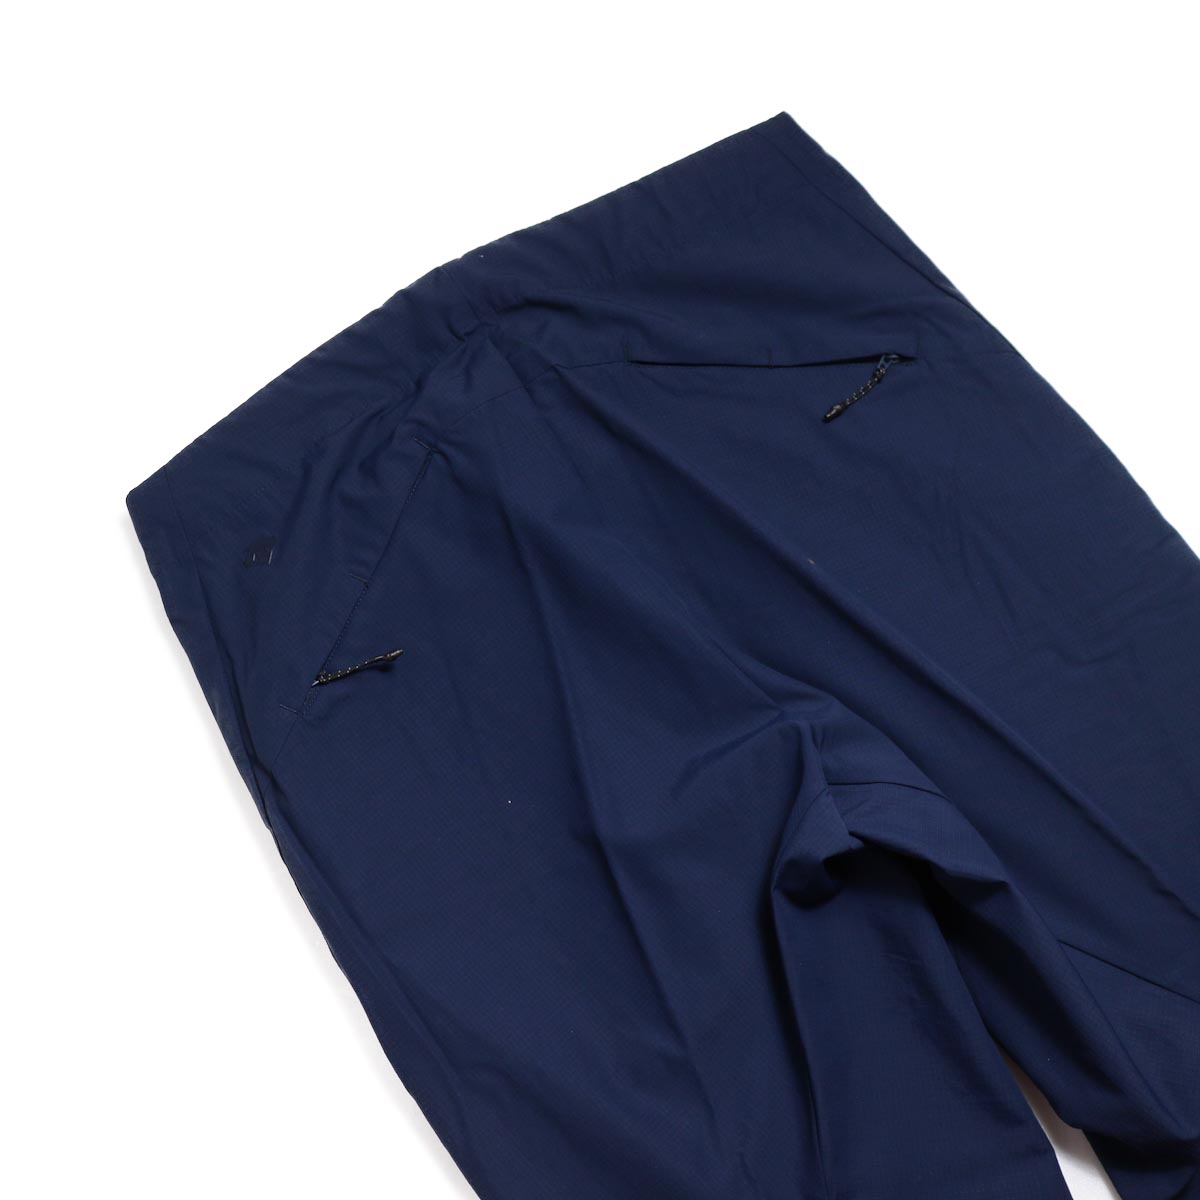 DESCENTE ddd / UNIFIT PANTS -NAVY ヒップポケット